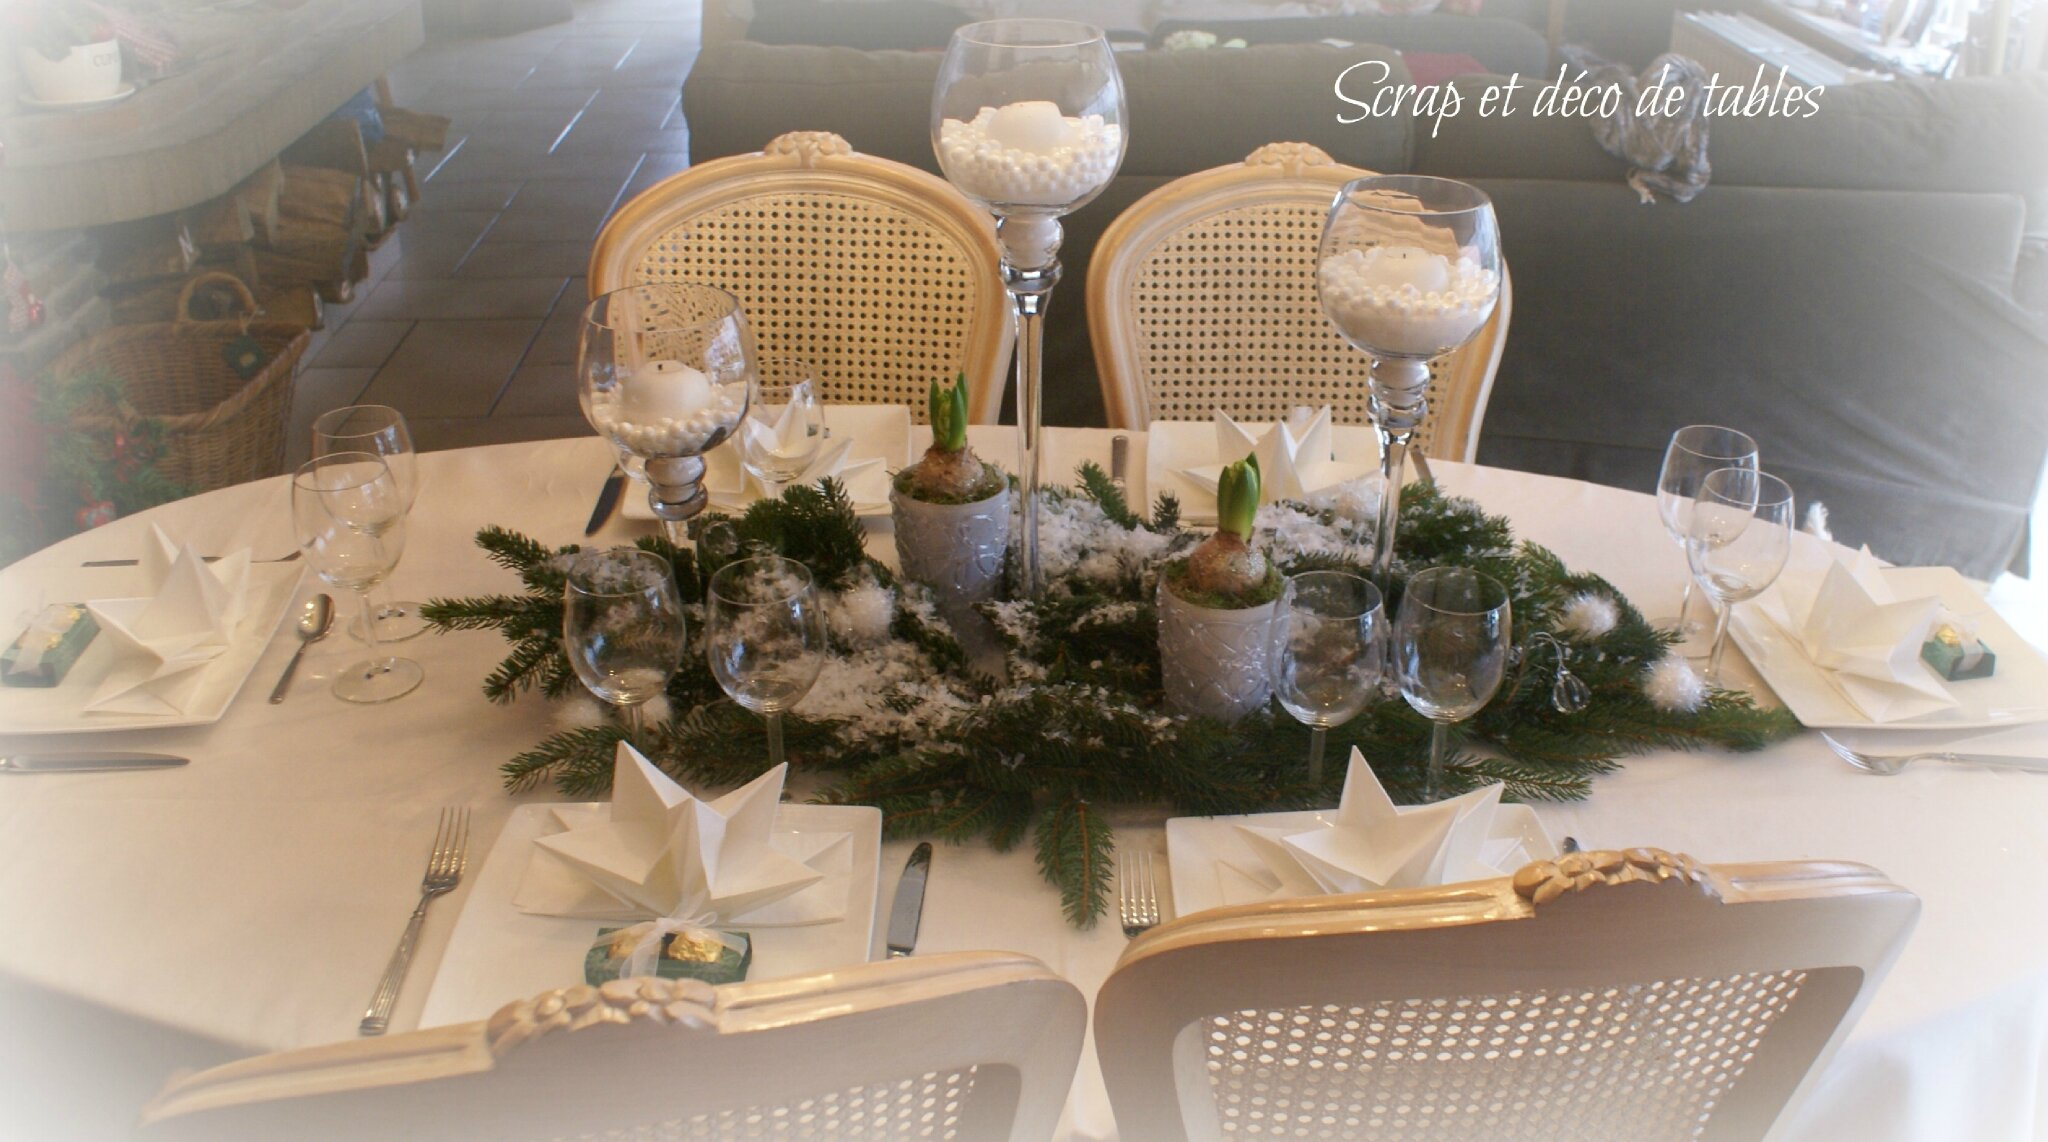 Deco table de no l en blanc scrap et d co de tables - Deco tables de noel ...